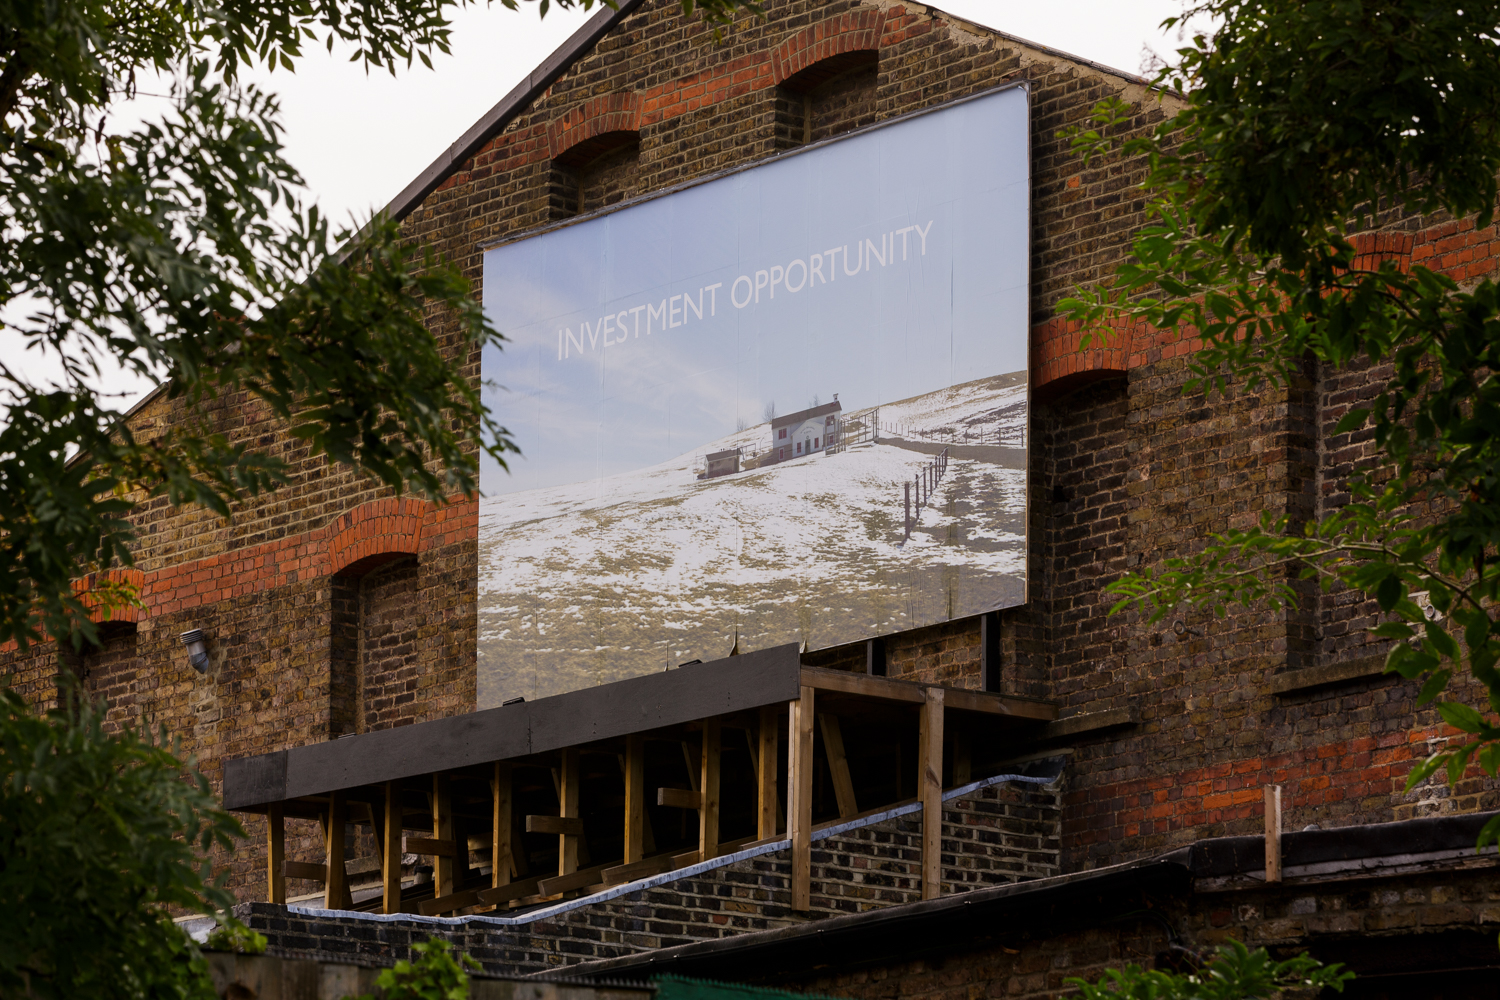 Investment Opportunity 2018 Billboard commission, Kingsgate Project Space, London